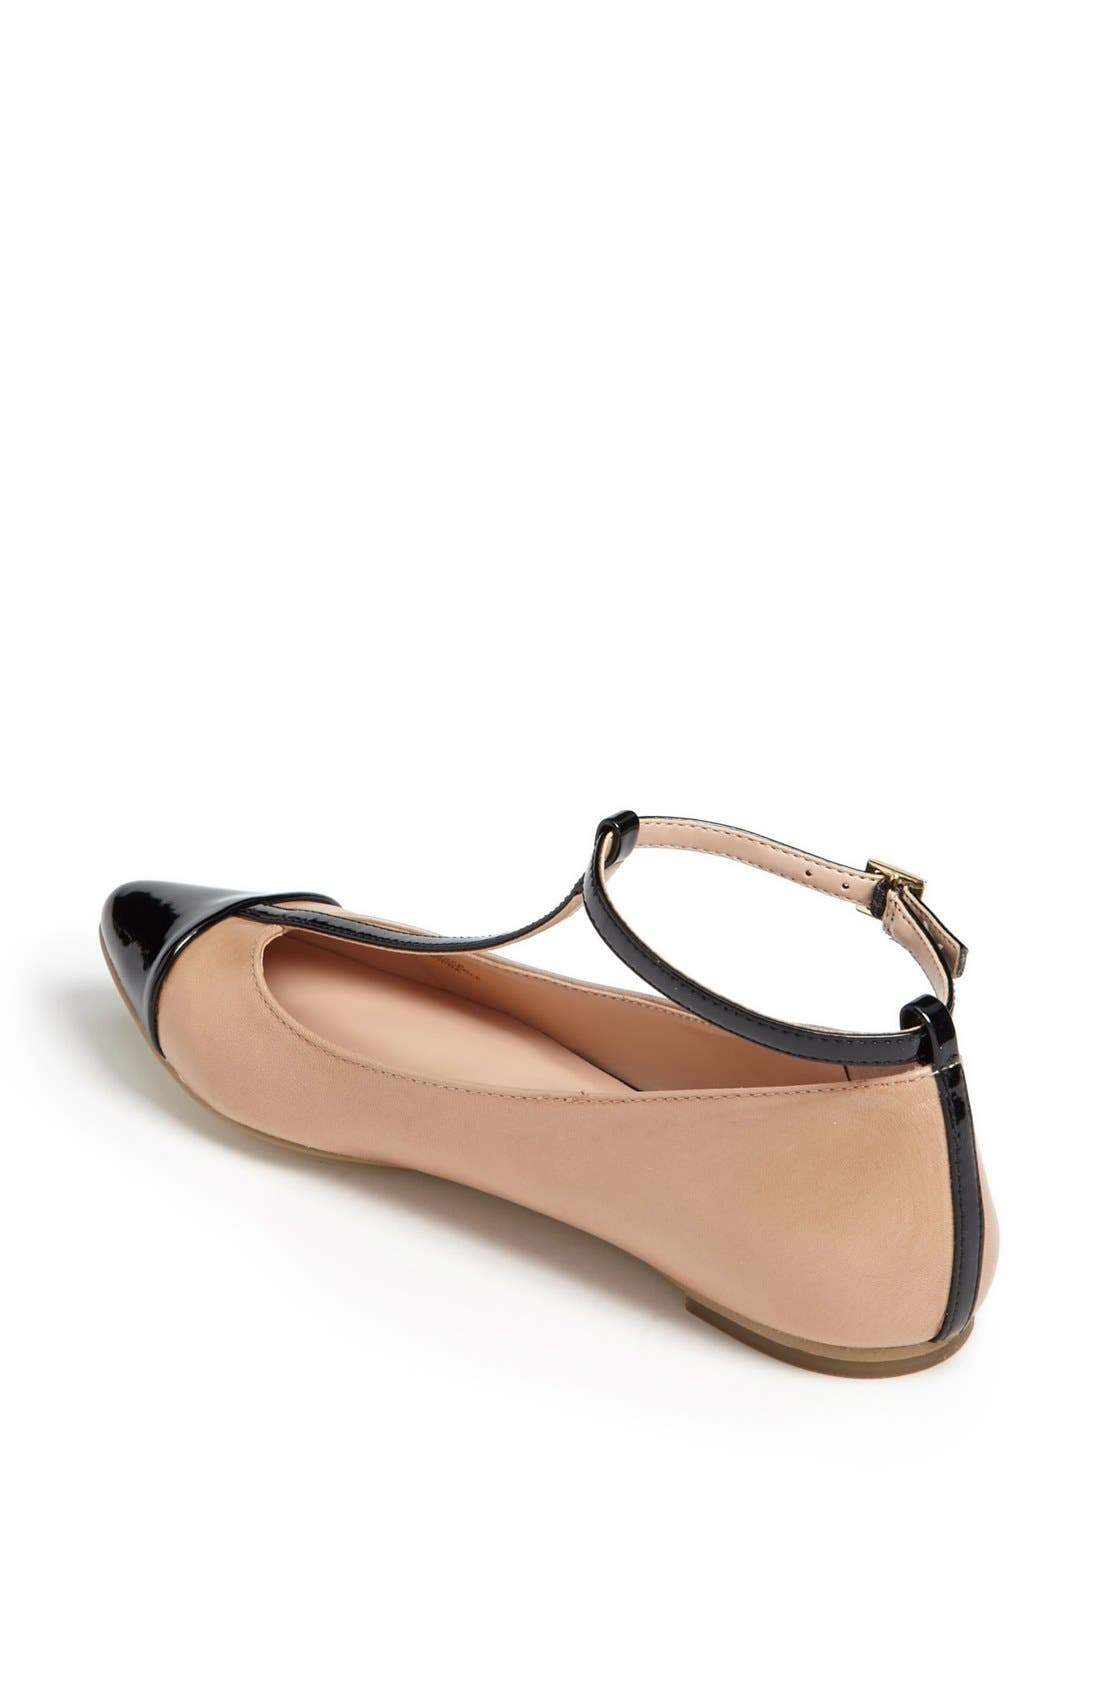 ,                             Julianne Hough for Sole Society 'Addy' Flat,                             Alternate thumbnail 19, color,                             102